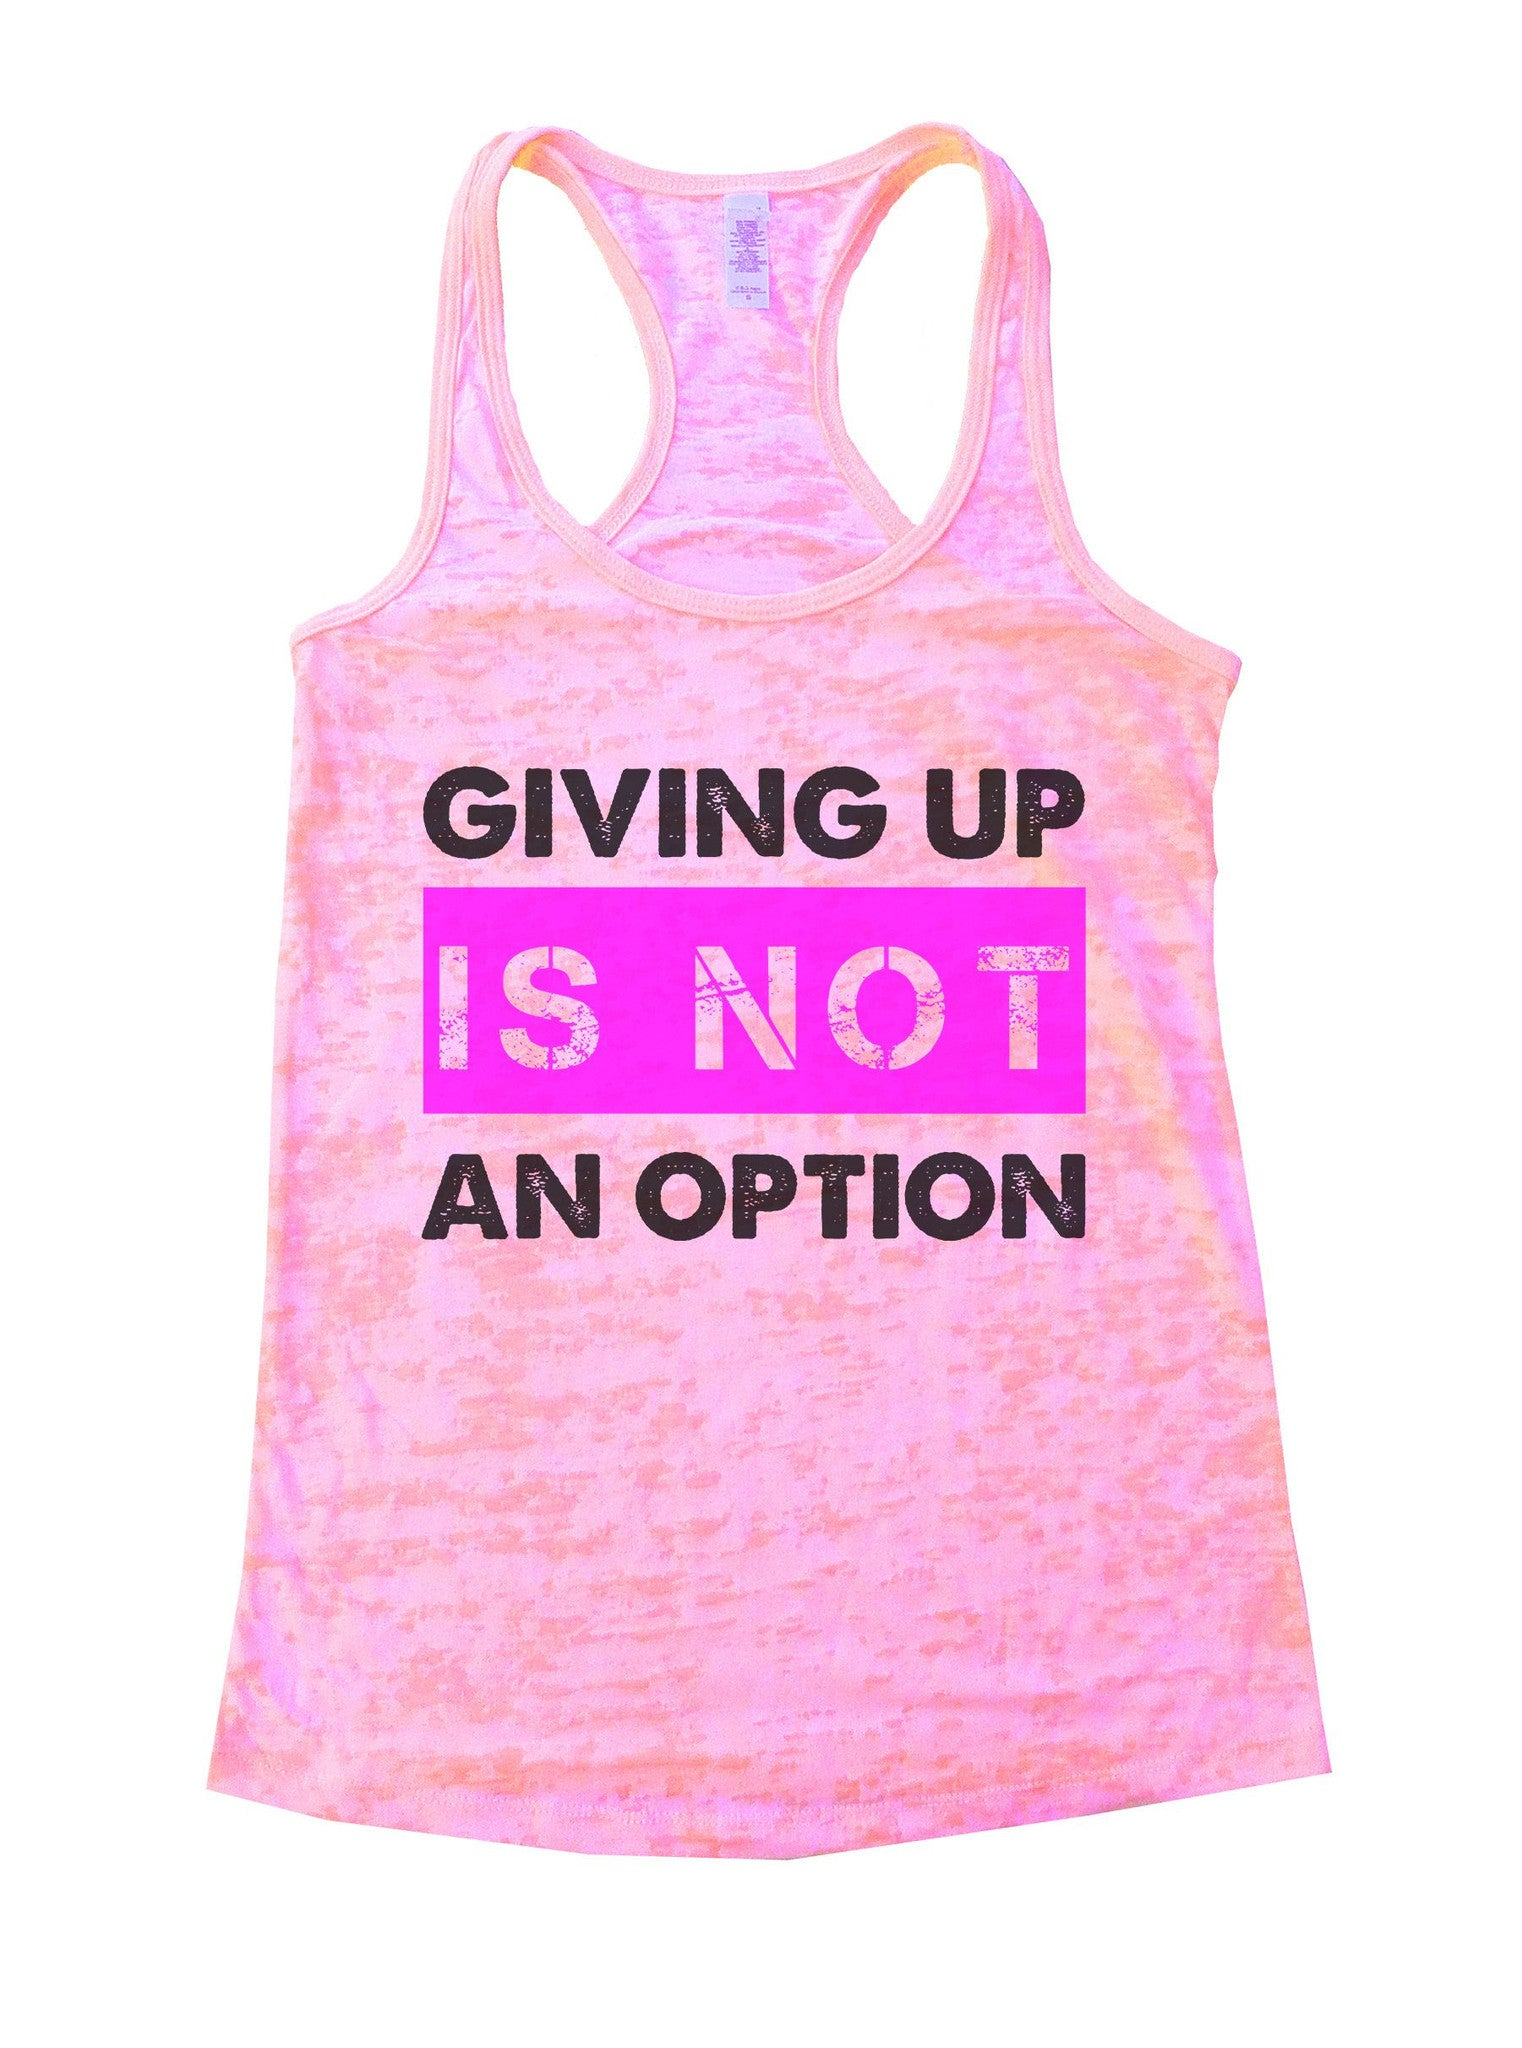 Giving Up Is Not An Option Burnout Tank Top By BurnoutTankTops.com - 844 - Funny Shirts Tank Tops Burnouts and Triblends  - 1